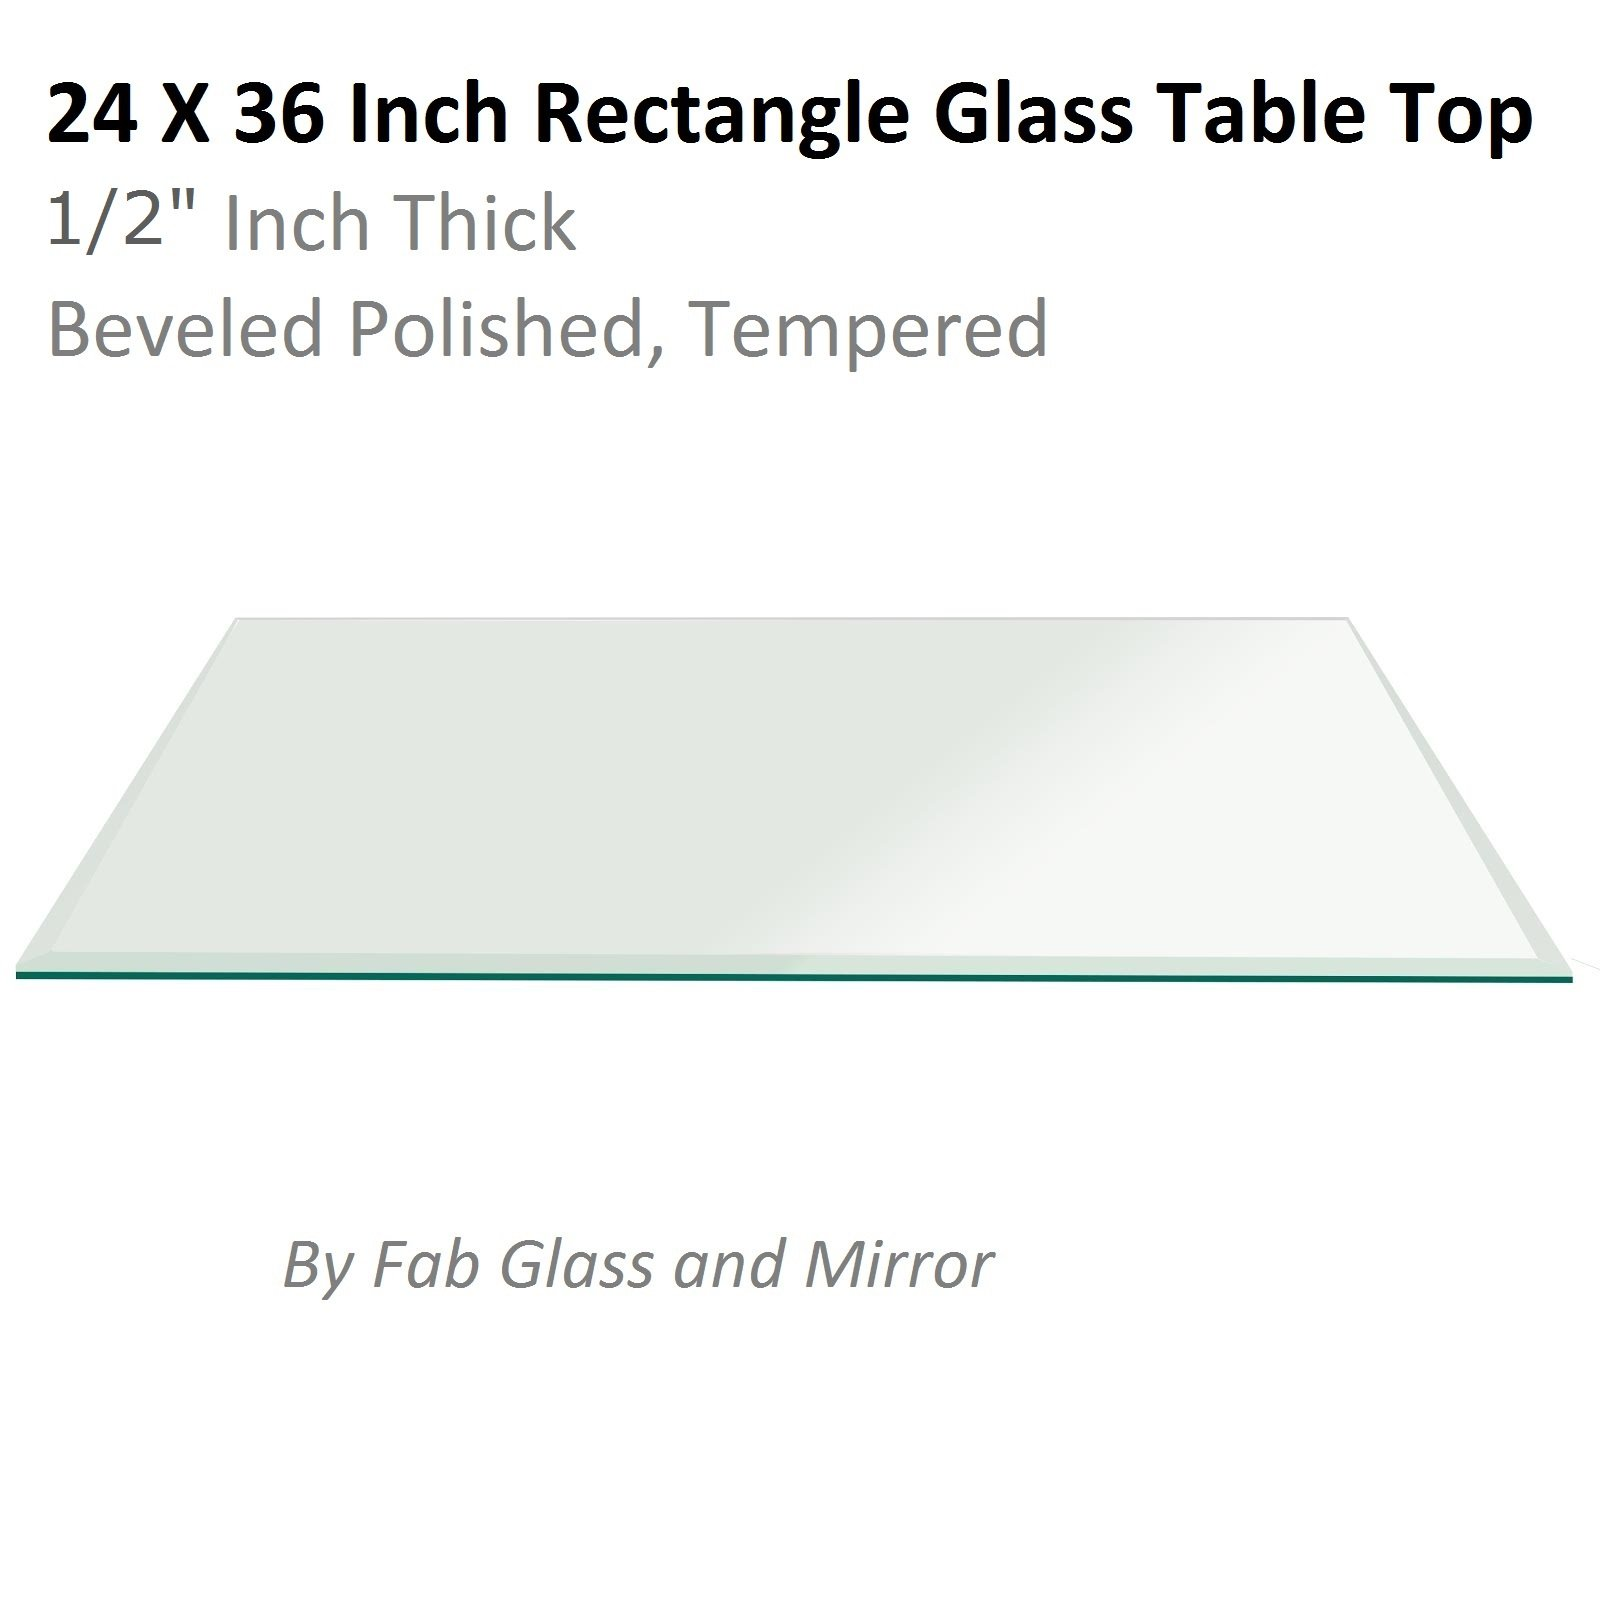 Fab Glass and Mirror T-24 x 36REC12THBETE Rectangle Glass Table Top Beveled Tempered Radius Corners, 24'' x 36'' x 1/2'' by Fab Glass and Mirror